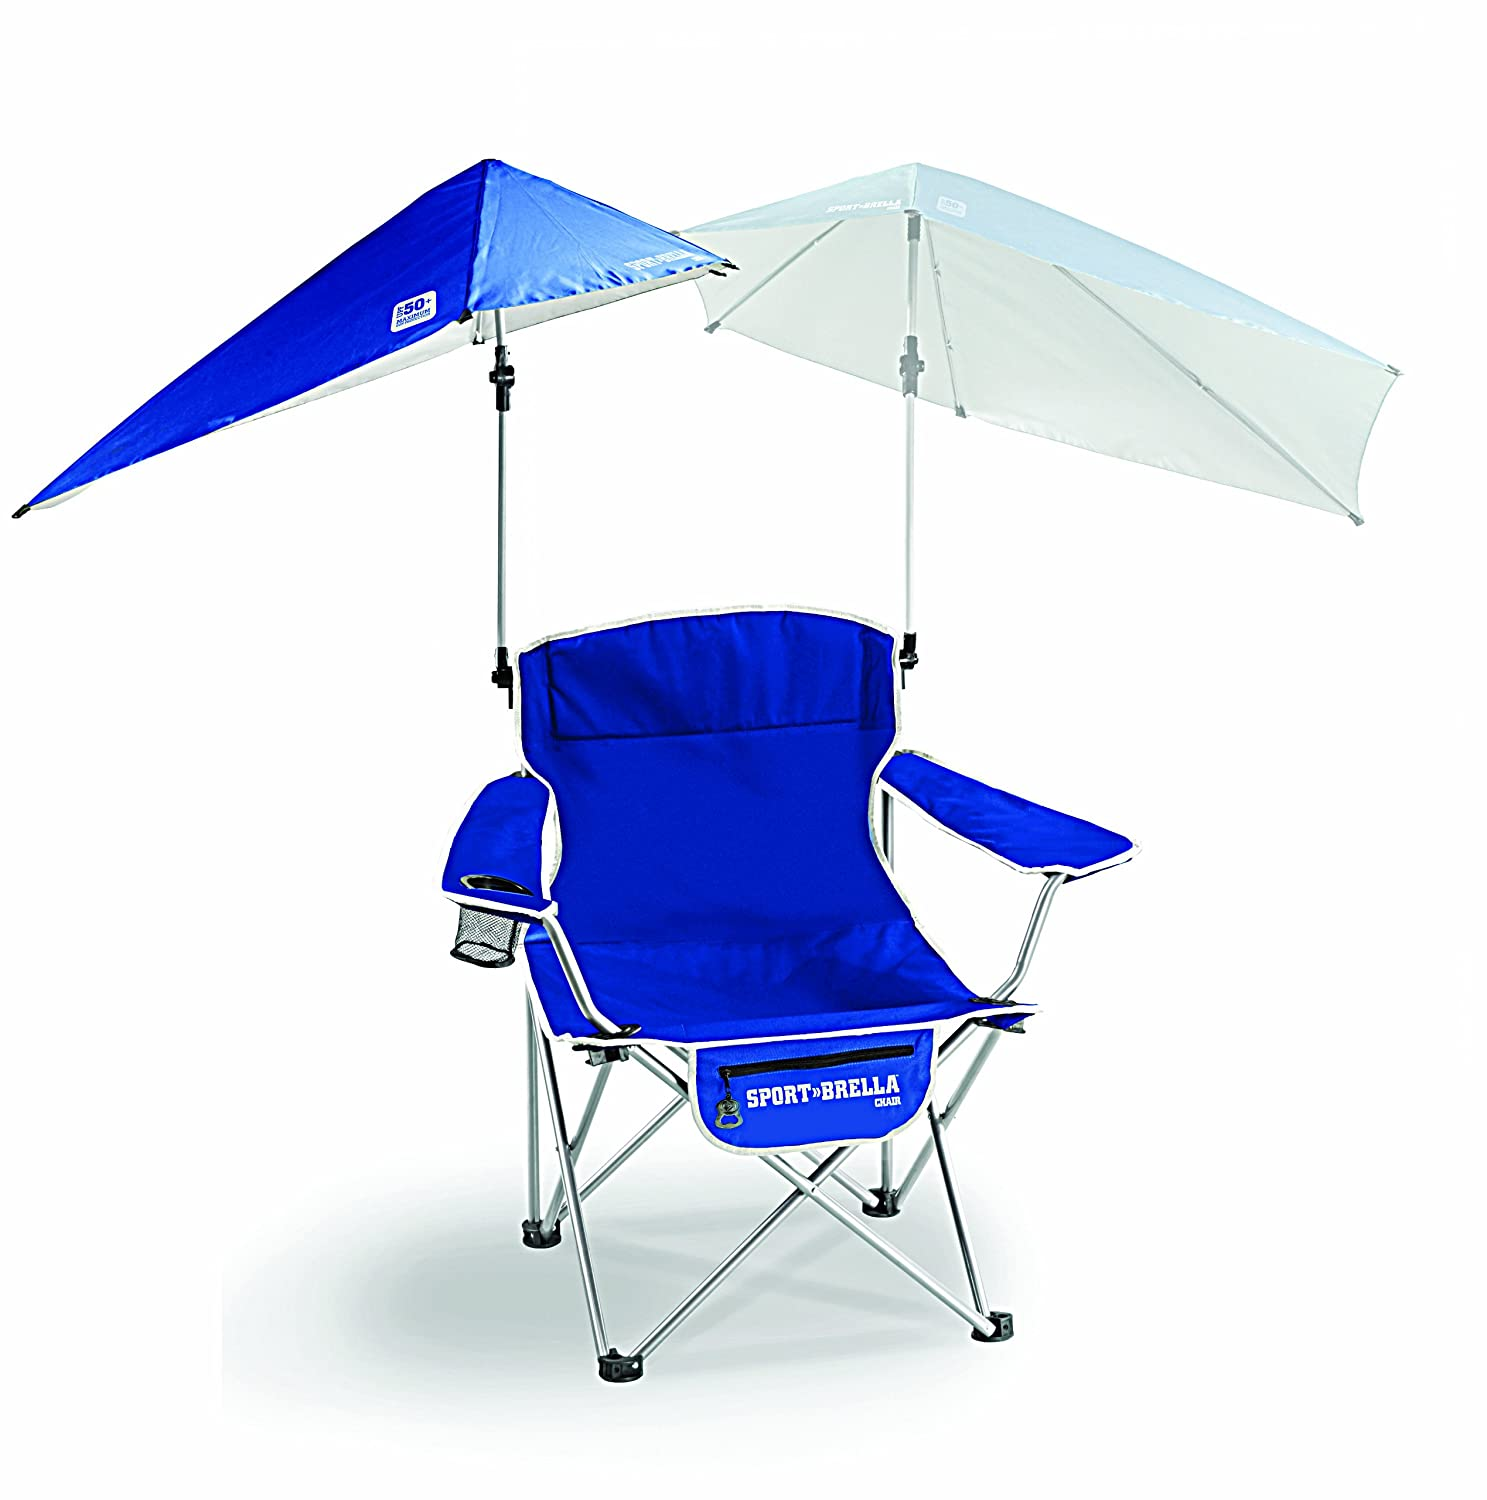 Camping chairs with umbrella - Amazon Com Sport Brella Umbrella Chair Blue Sun Shelters Sports Outdoors